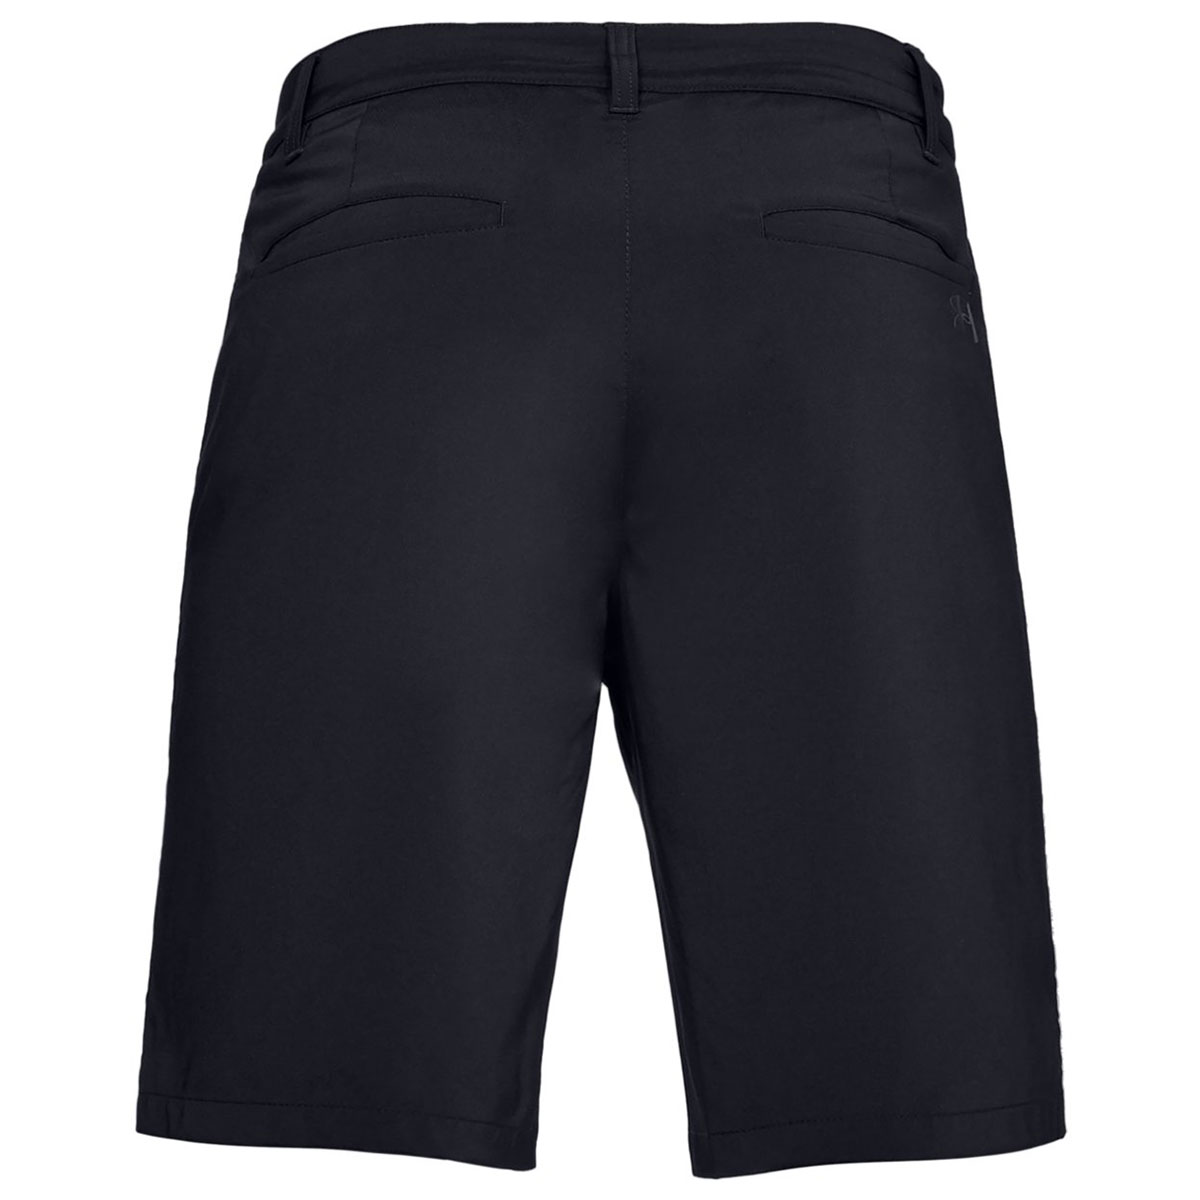 Under-Armour-Mens-2019-EU-Tech-Stretch-Soft-Tapered-Fitted-Golf-Shorts Indexbild 5